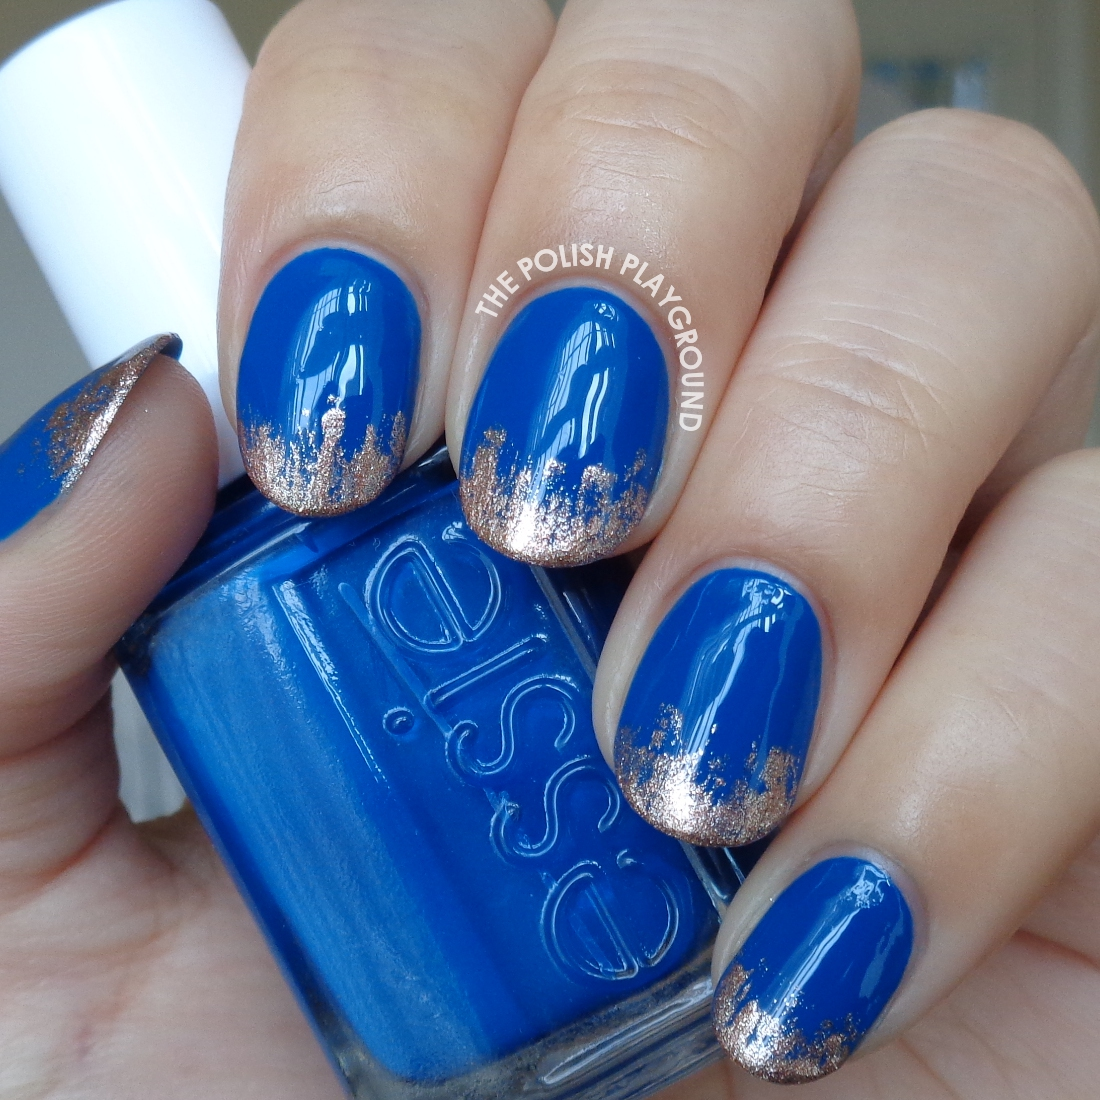 The Polish Playground: Royal Blue with Rose Gold Tips